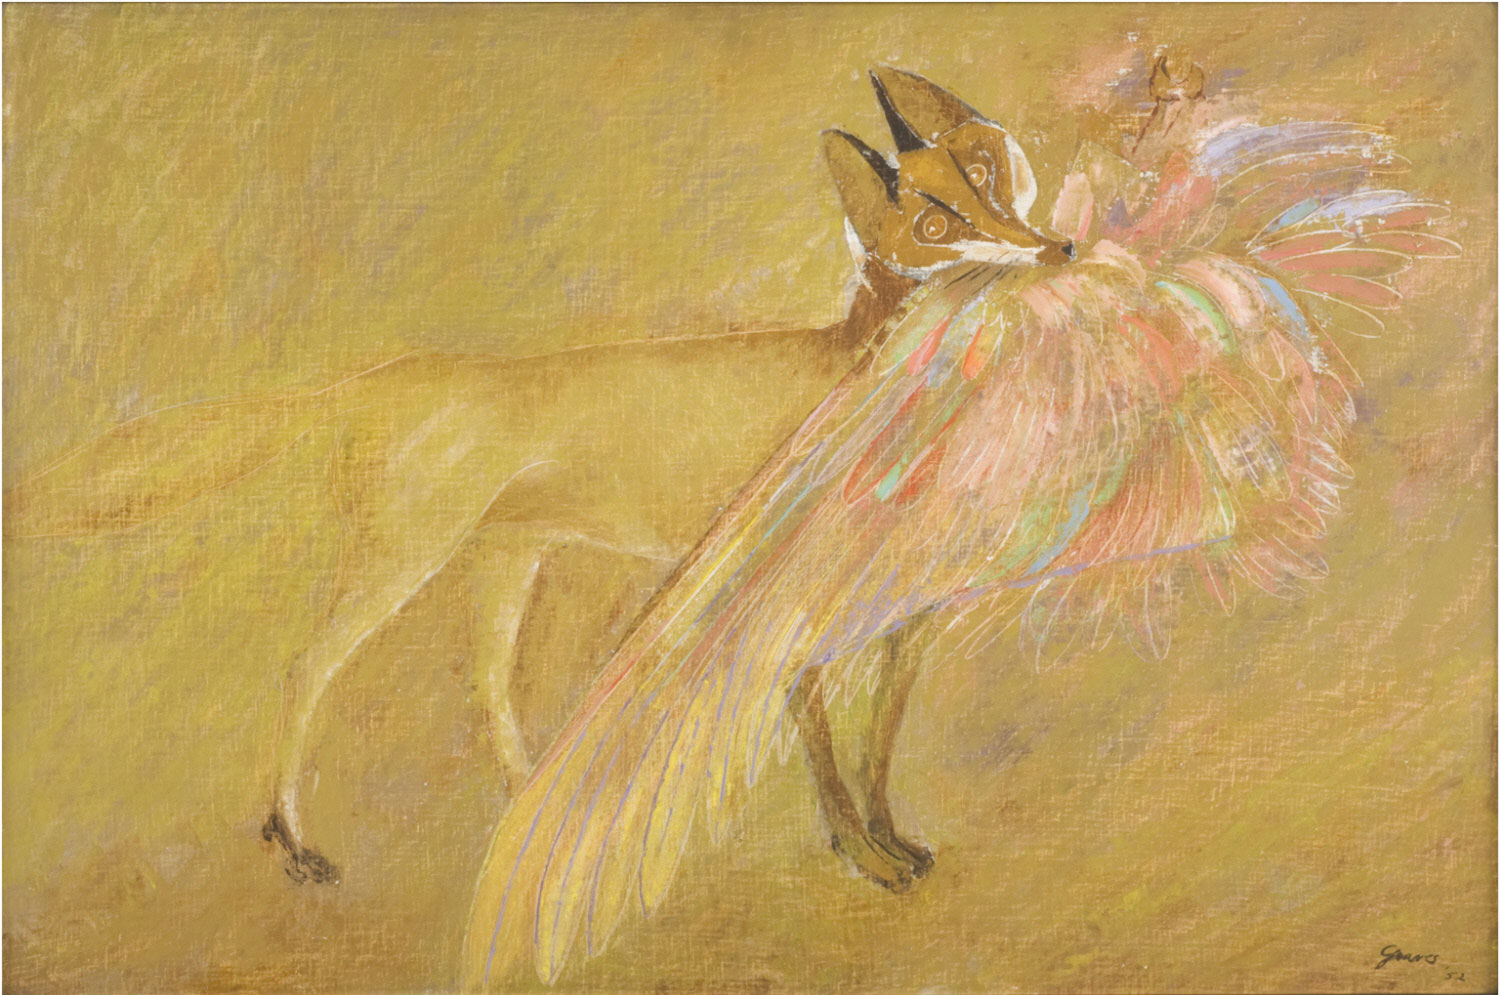 Fox with a Phoenix Wing